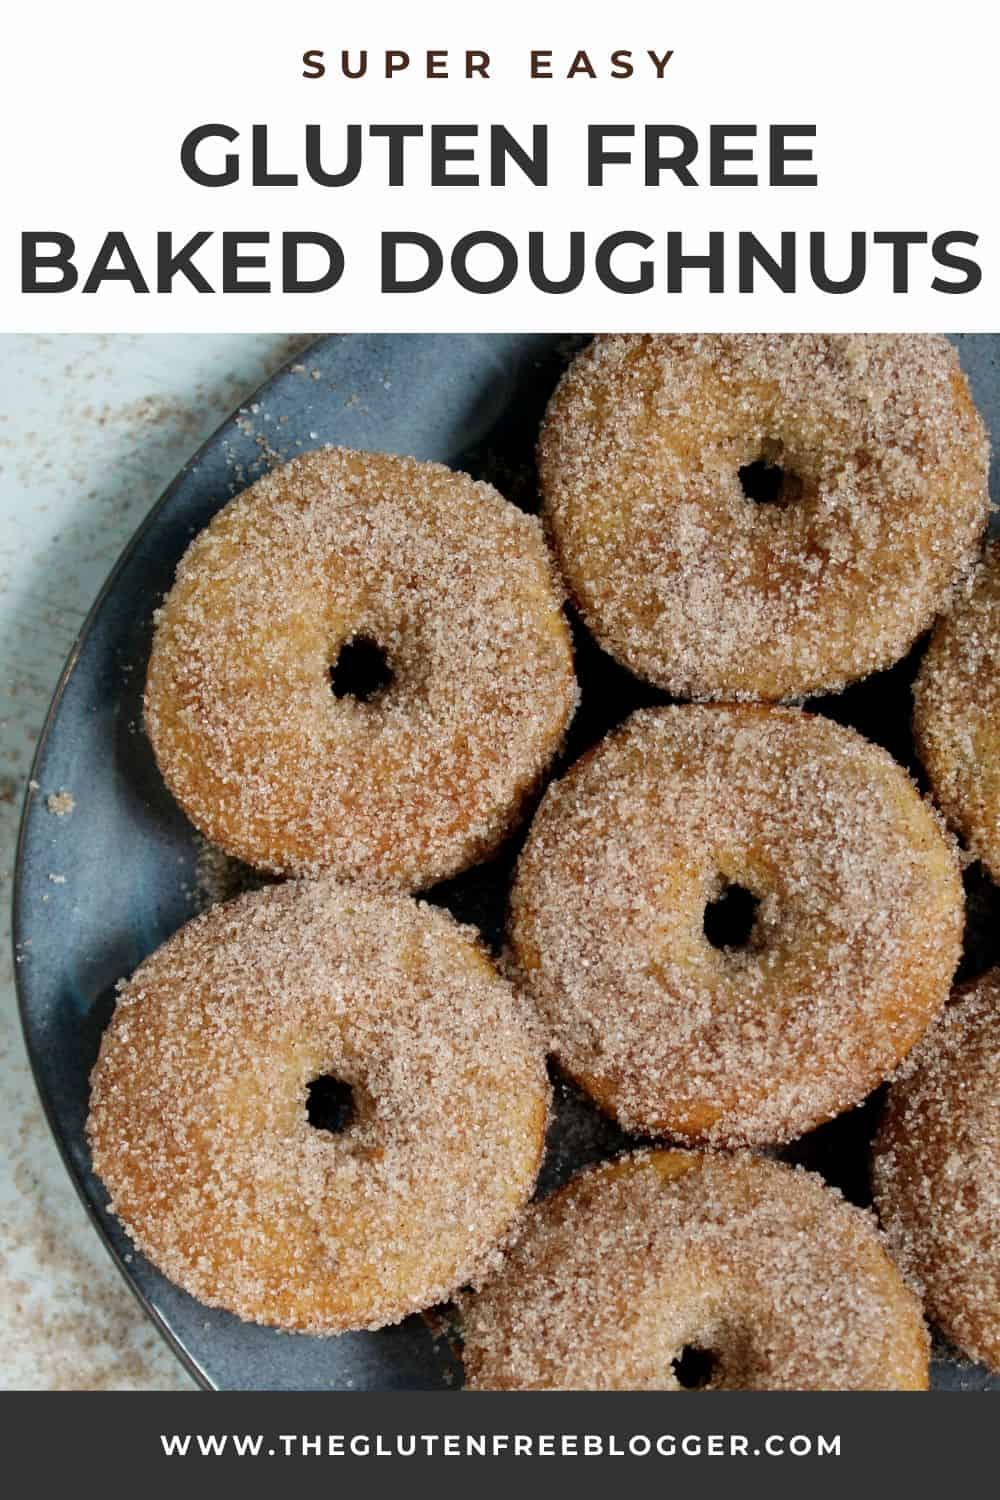 GLUTEN FREE BAKED DOUGHNUTS RECIPE EASY BAKED DONUTS CINNAMON SUGAR (2)